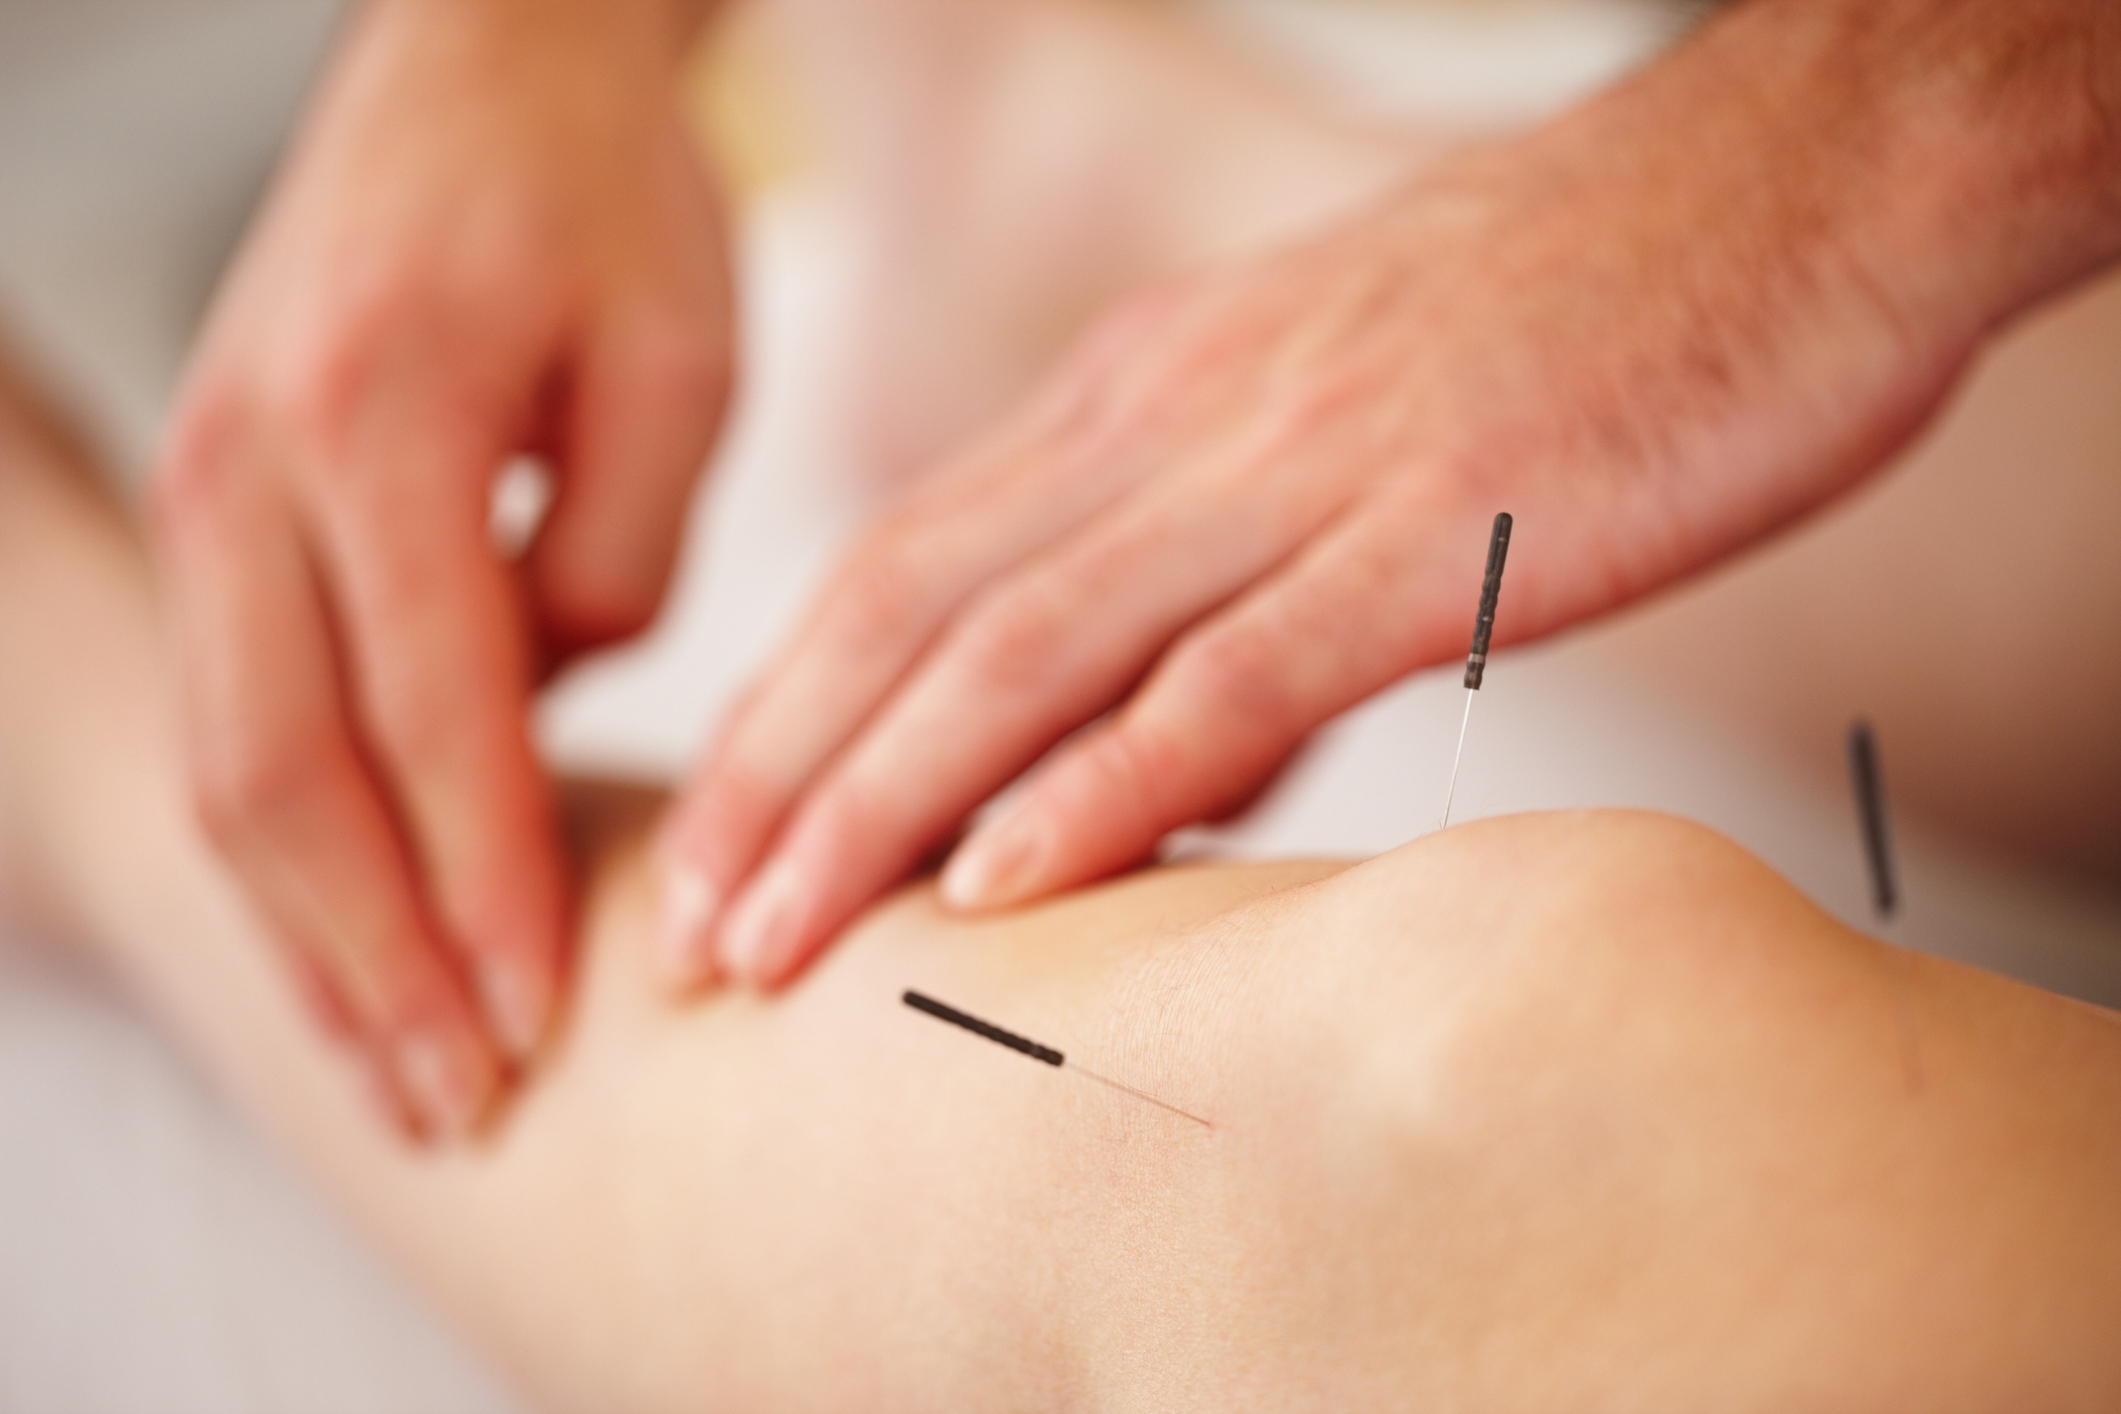 Acupuncture needles may be combined with acupressure work (tuina).